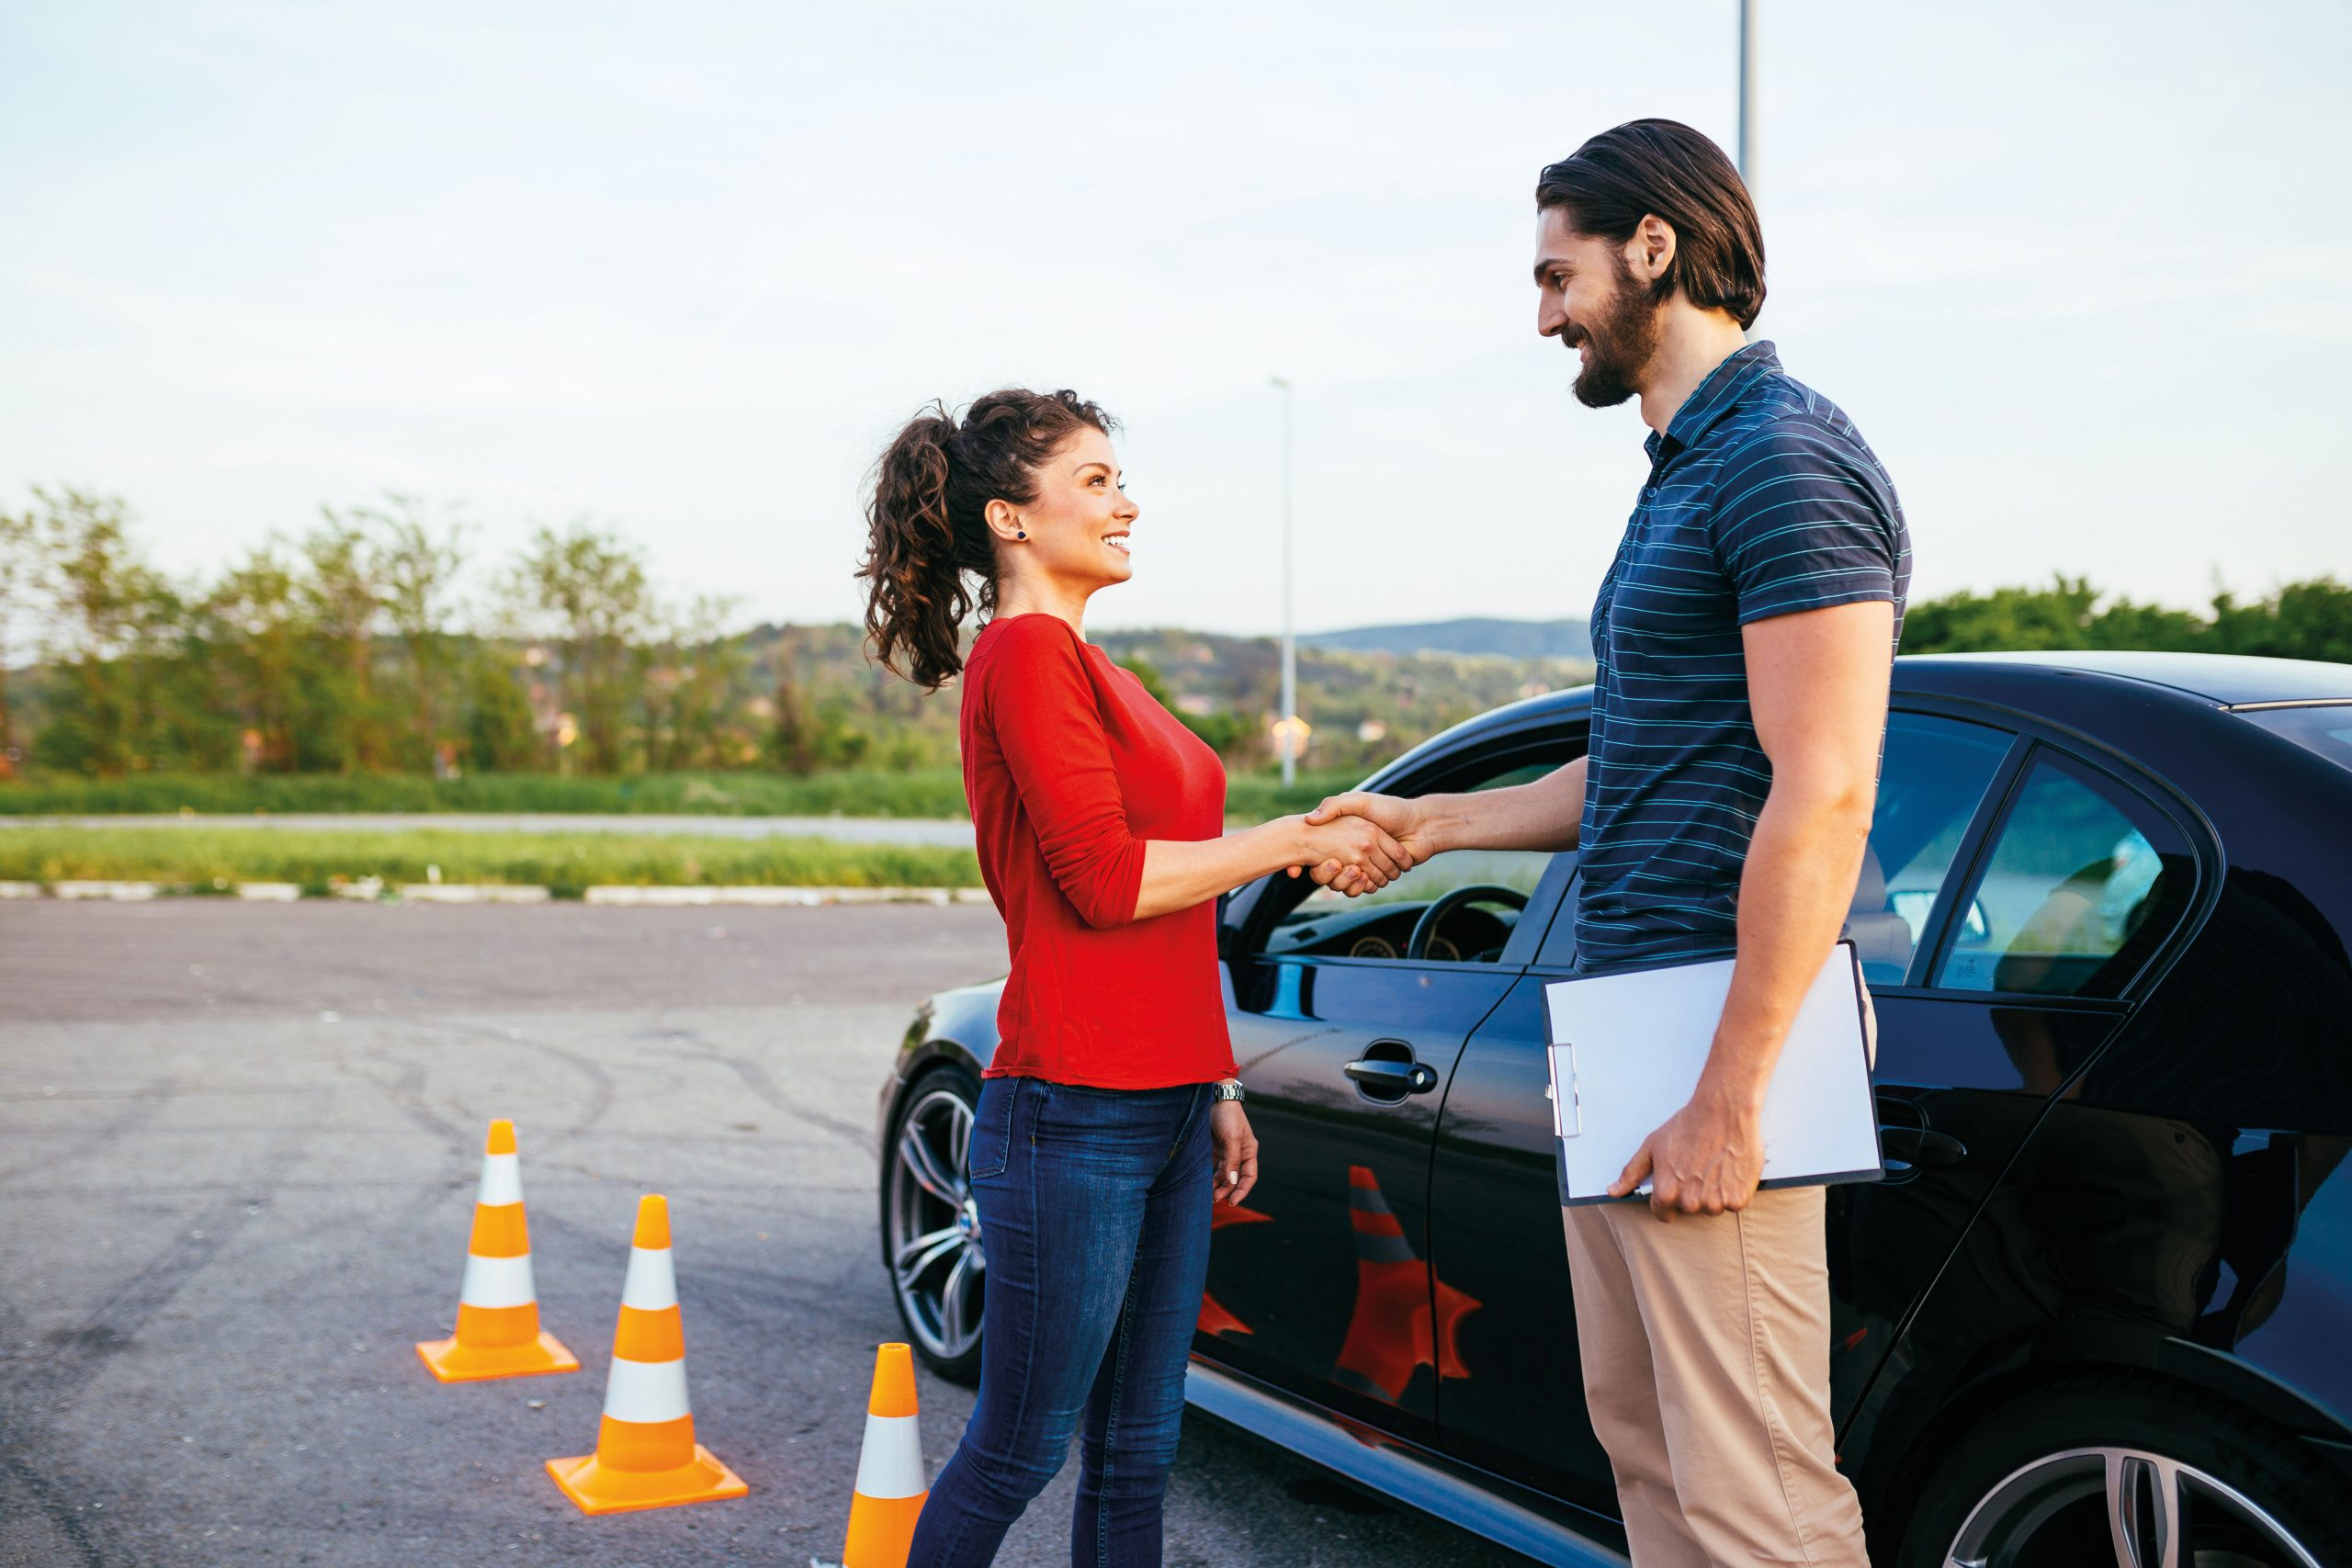 Man and woman shaking hands while standing next to a car after doing a training course in professional development